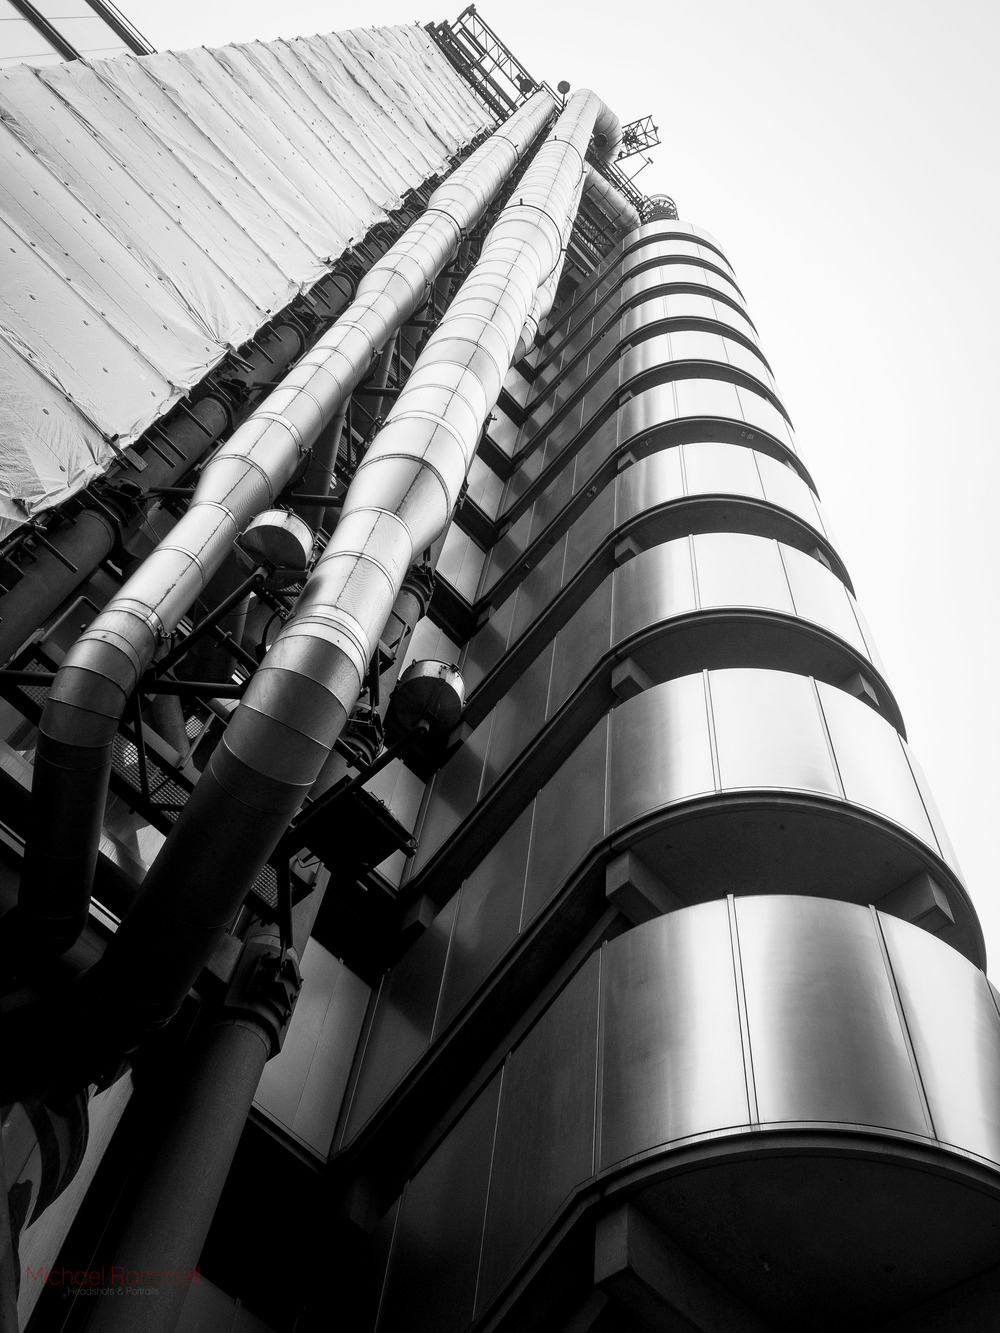 This is the Lloyds Tower, just outside of Leadenhall Market. Very Swanky!